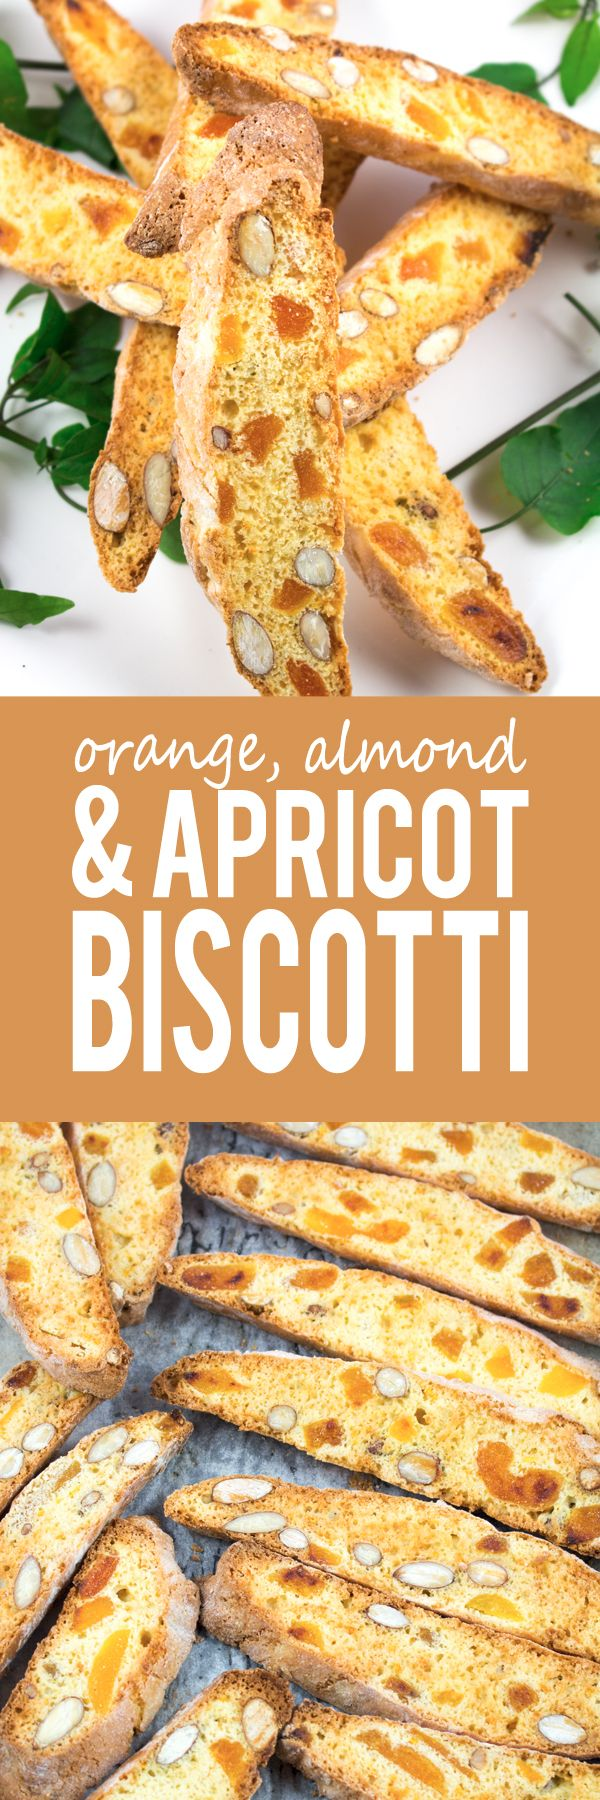 Orange, Almond & Apricot Biscotti - My version is bursting with crunchy almonds that go perfectly with the sweet and tart flavours of the dried apricots. The orange zest gives a great freshness to the mix.